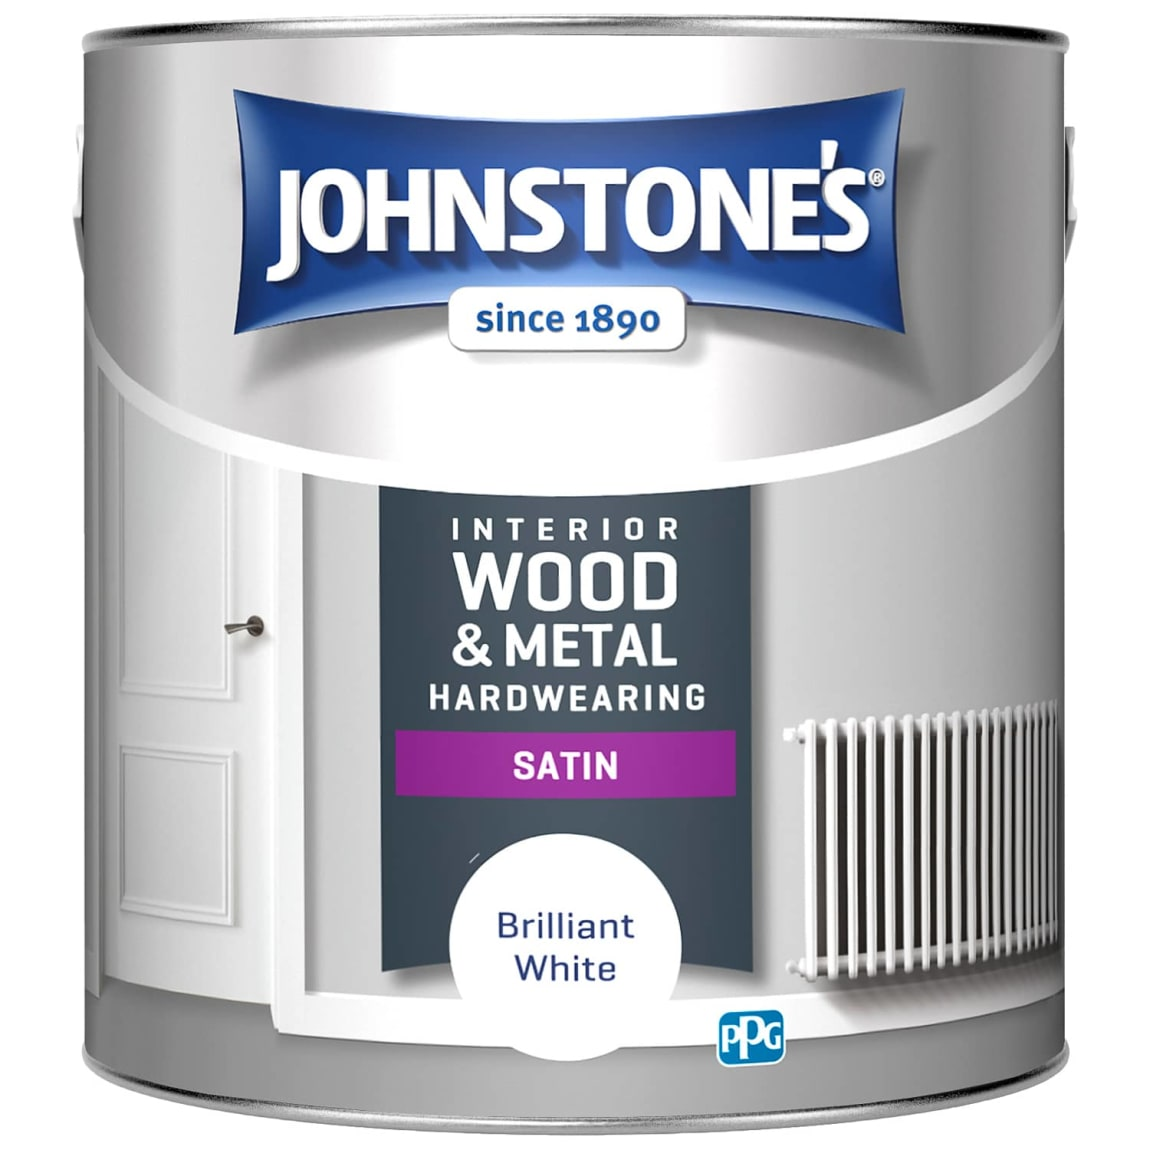 Johnstone's Hardwearing Satin Paint 2.5L - Brilliant White